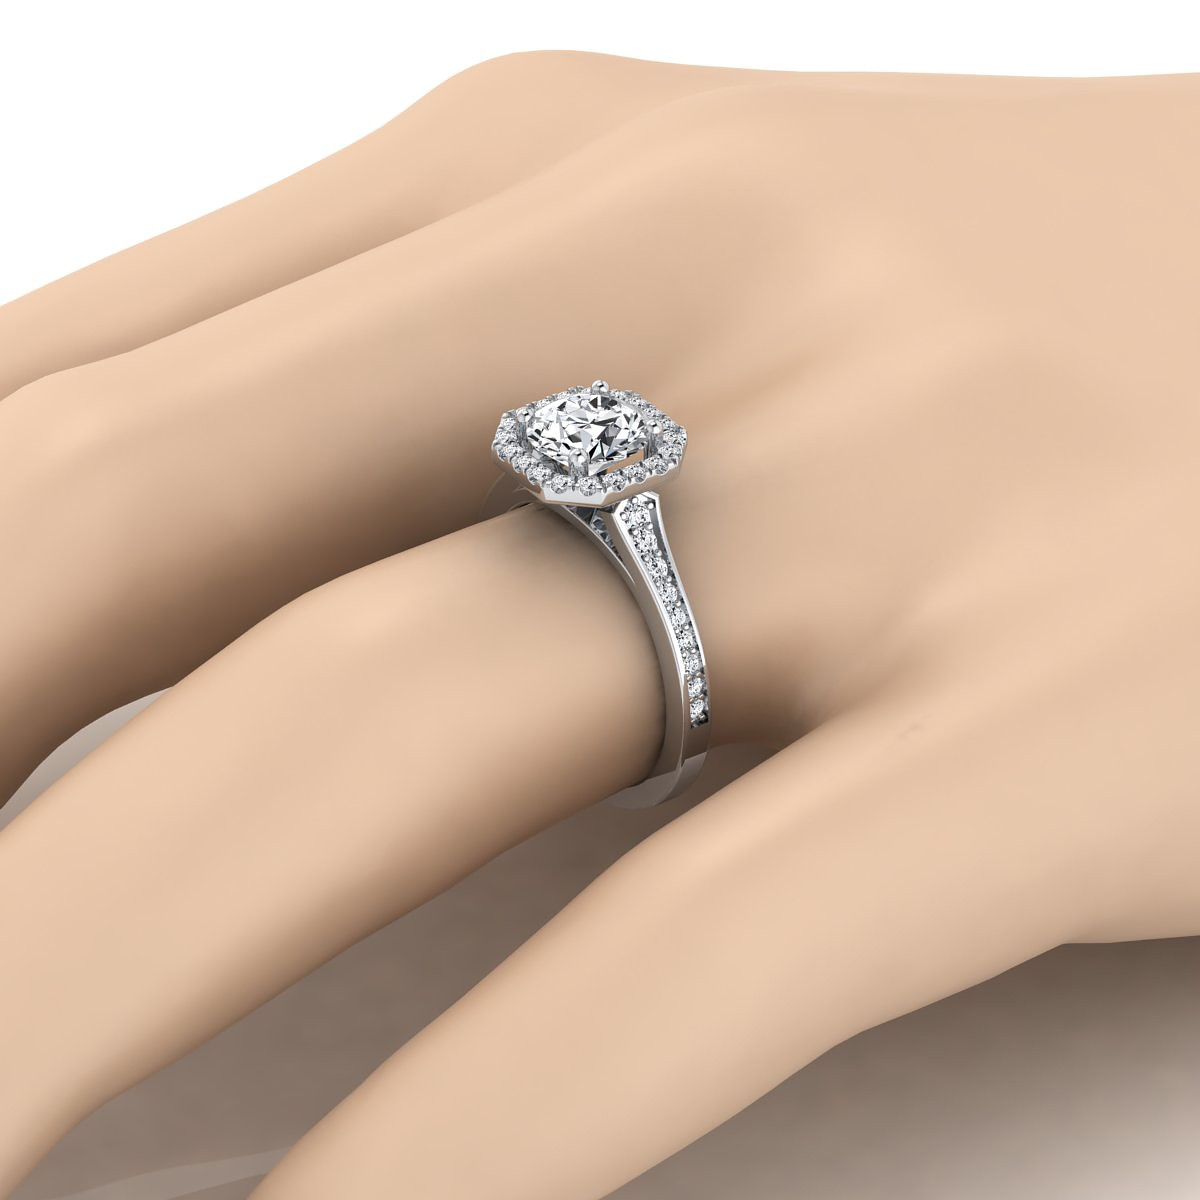 Diamond Engagement Ring With Octagon Halo Frame With Pave Shank In 14k White Gold (1/3 Ct.tw.)